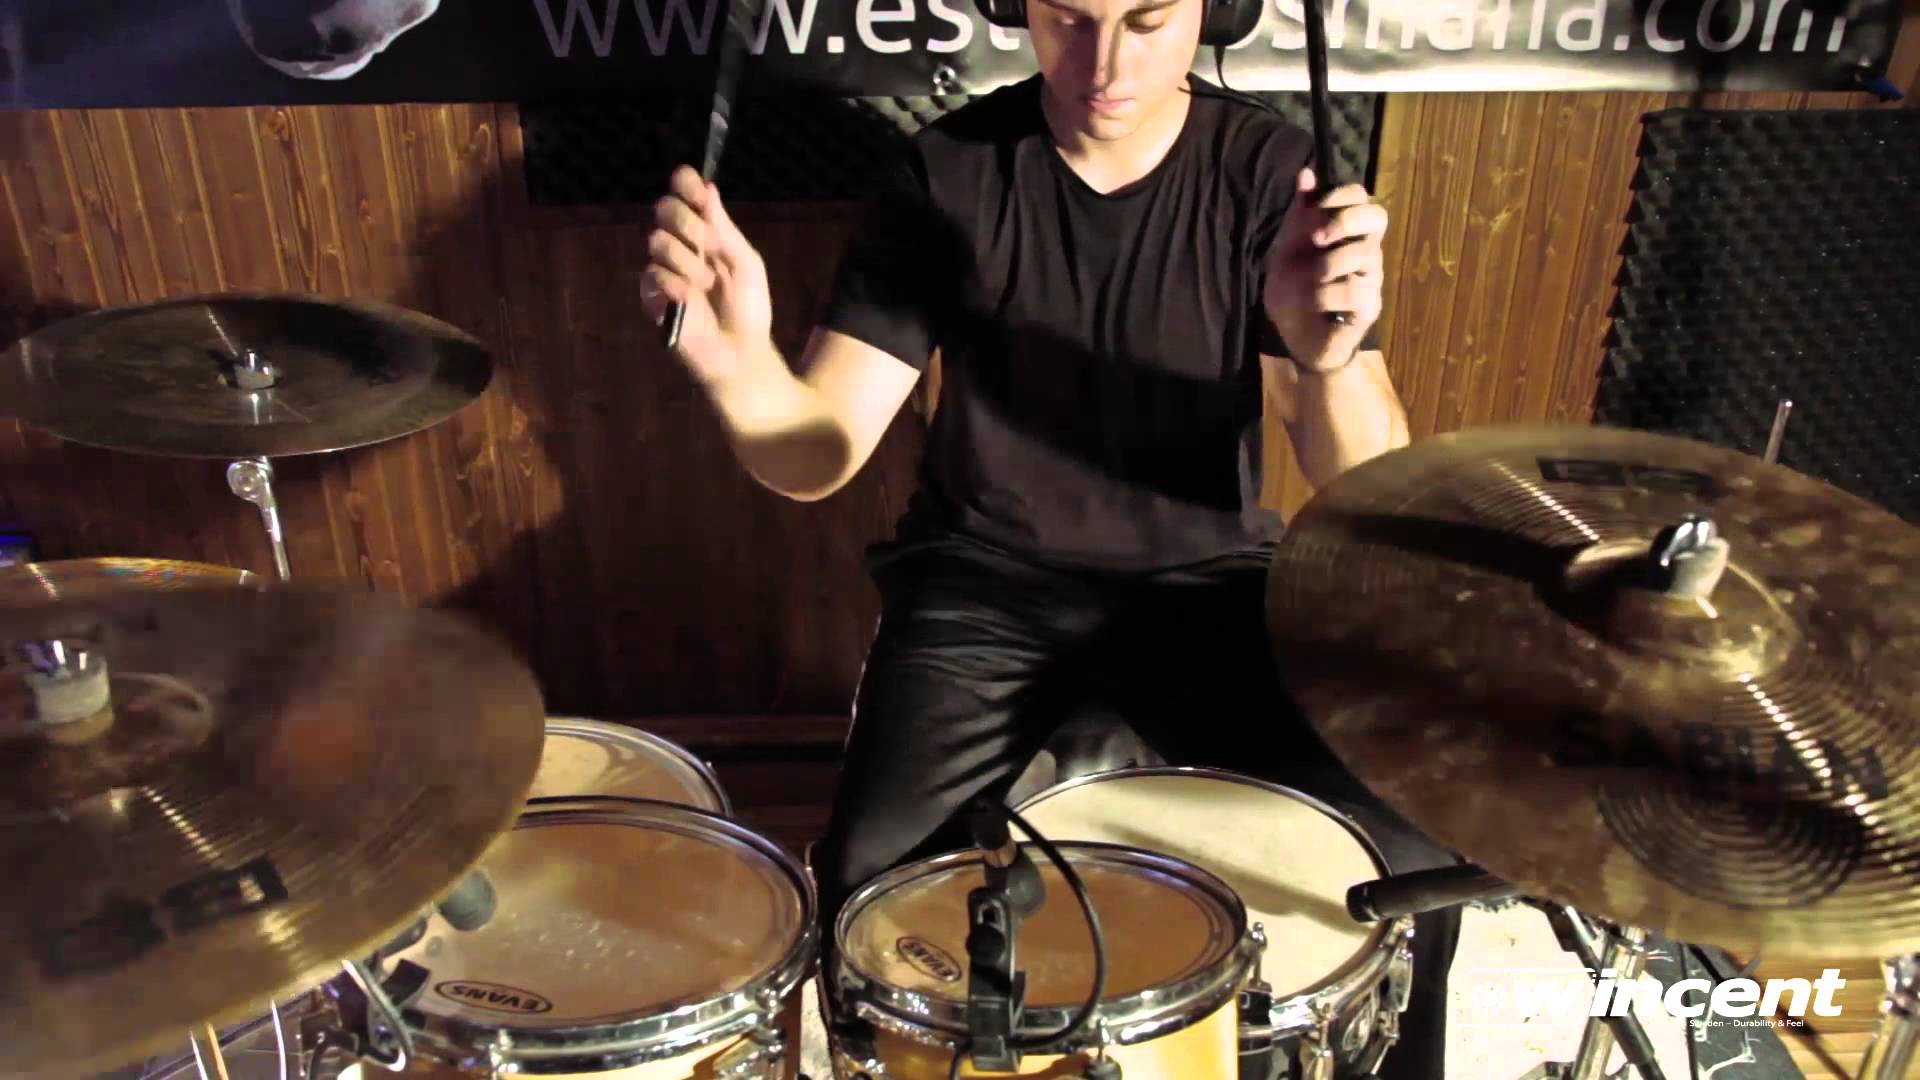 David Carballeda, de Upcoming of Devastation, Playthrough oficial para Wincent Drumsticks